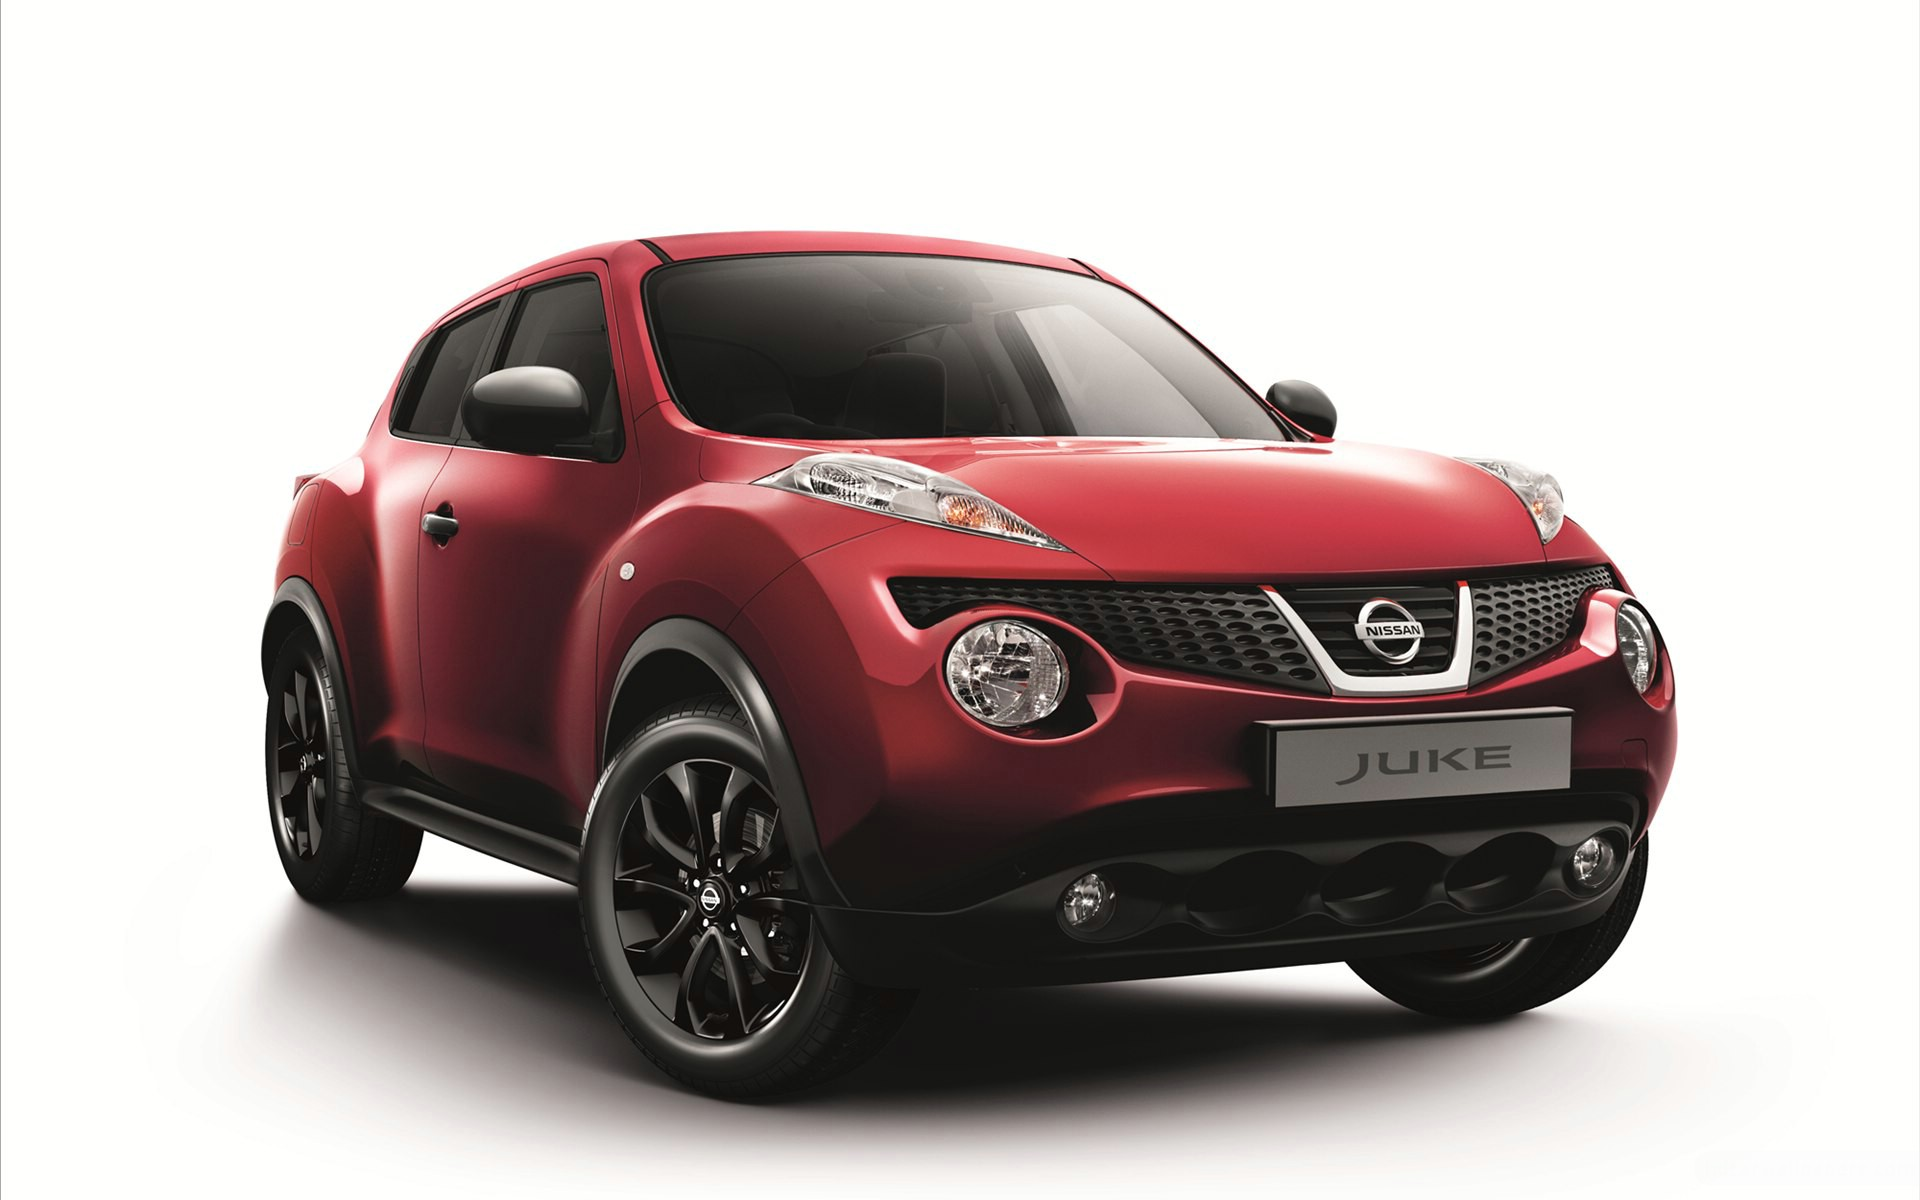 2012 nissan limited juke kuro wallpaper hd car wallpapers id 2181. Black Bedroom Furniture Sets. Home Design Ideas